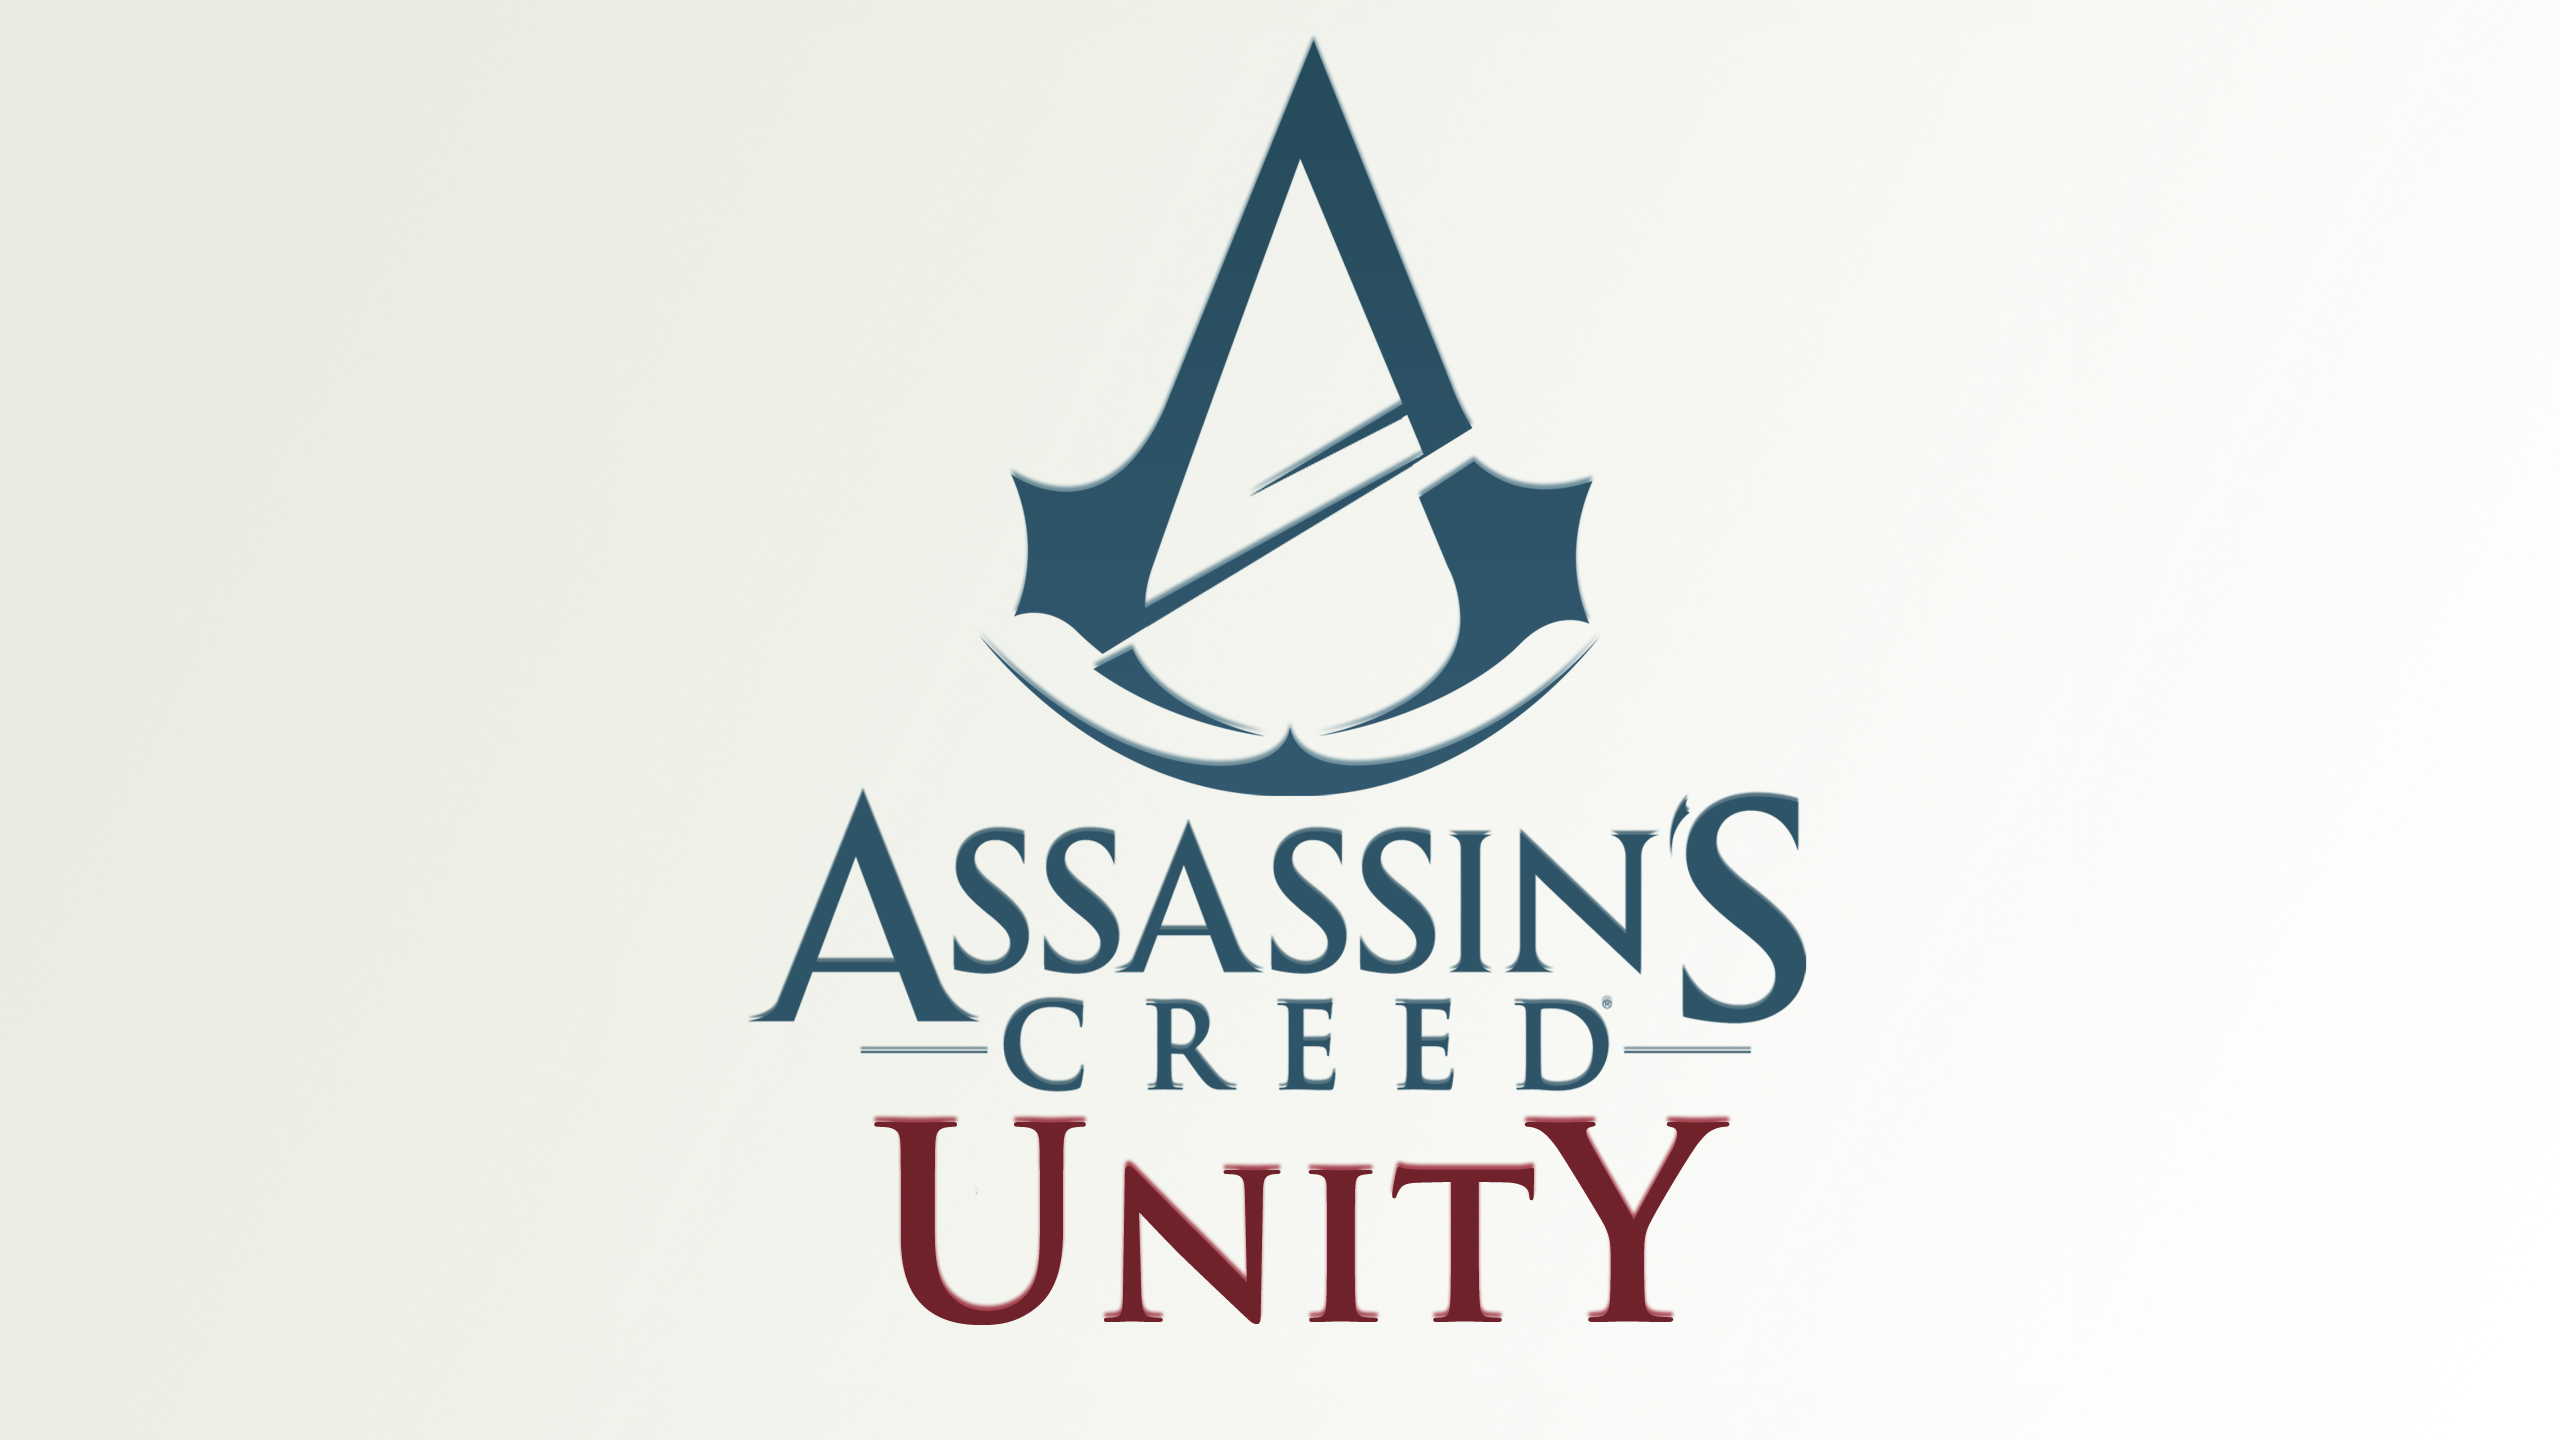 assassins creed unity logo wallpaper | 2560x1440 | #27572